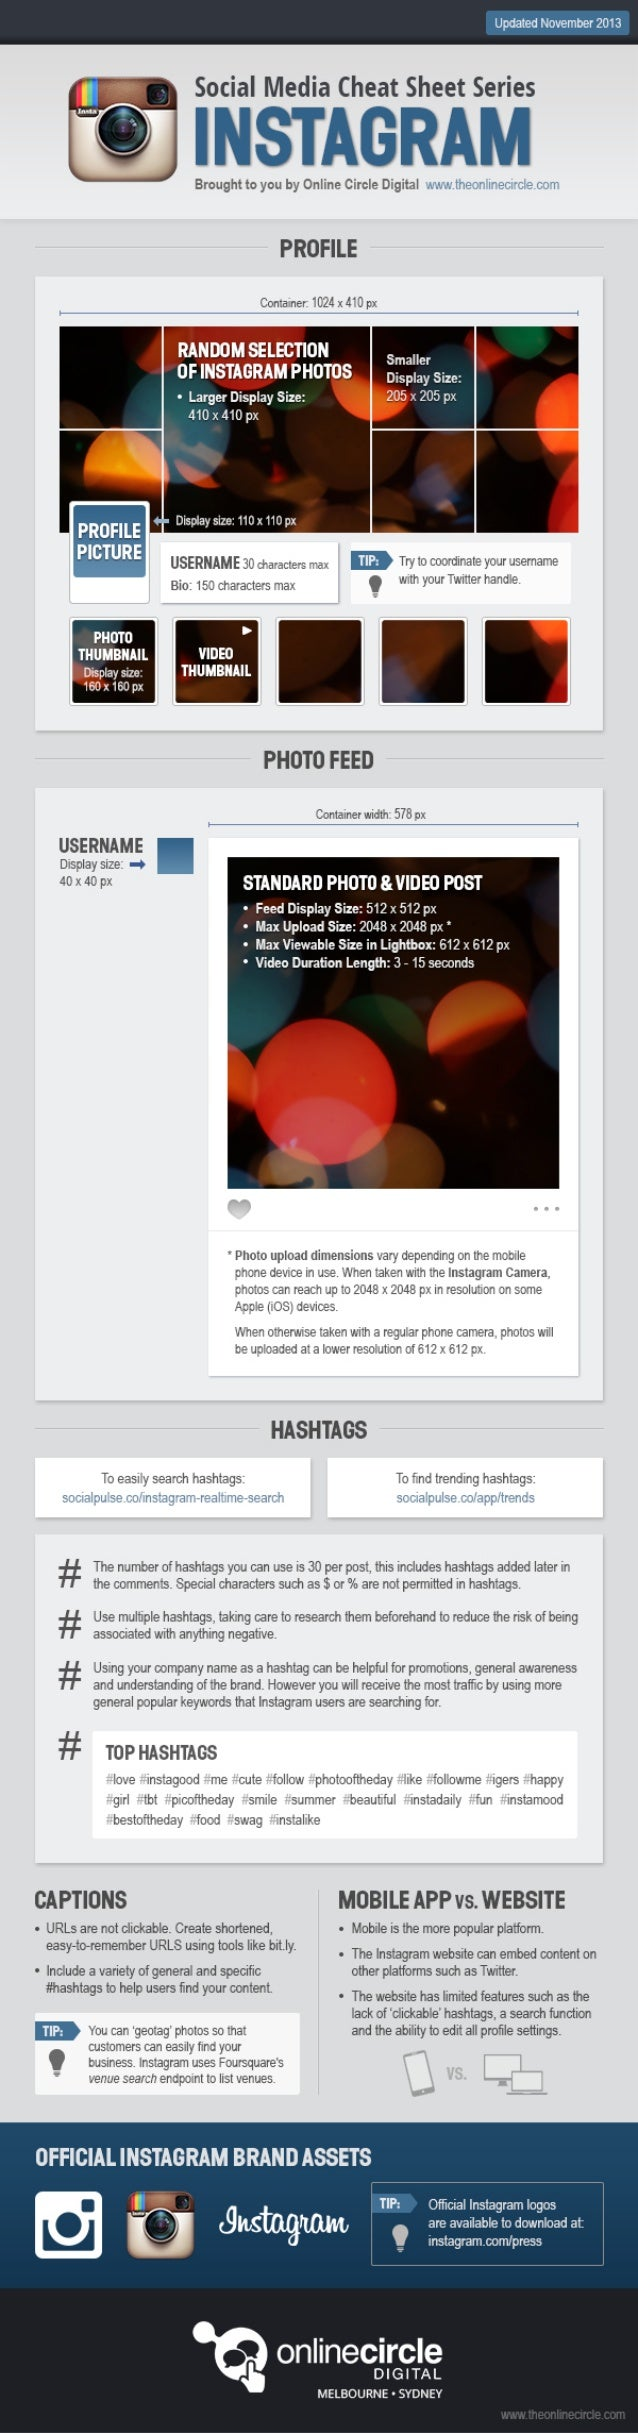 Instagram Sizes and Dimensions Cheat Sheet 2013 Online Circle Digital Agency have made it easier than ever for you to find ...